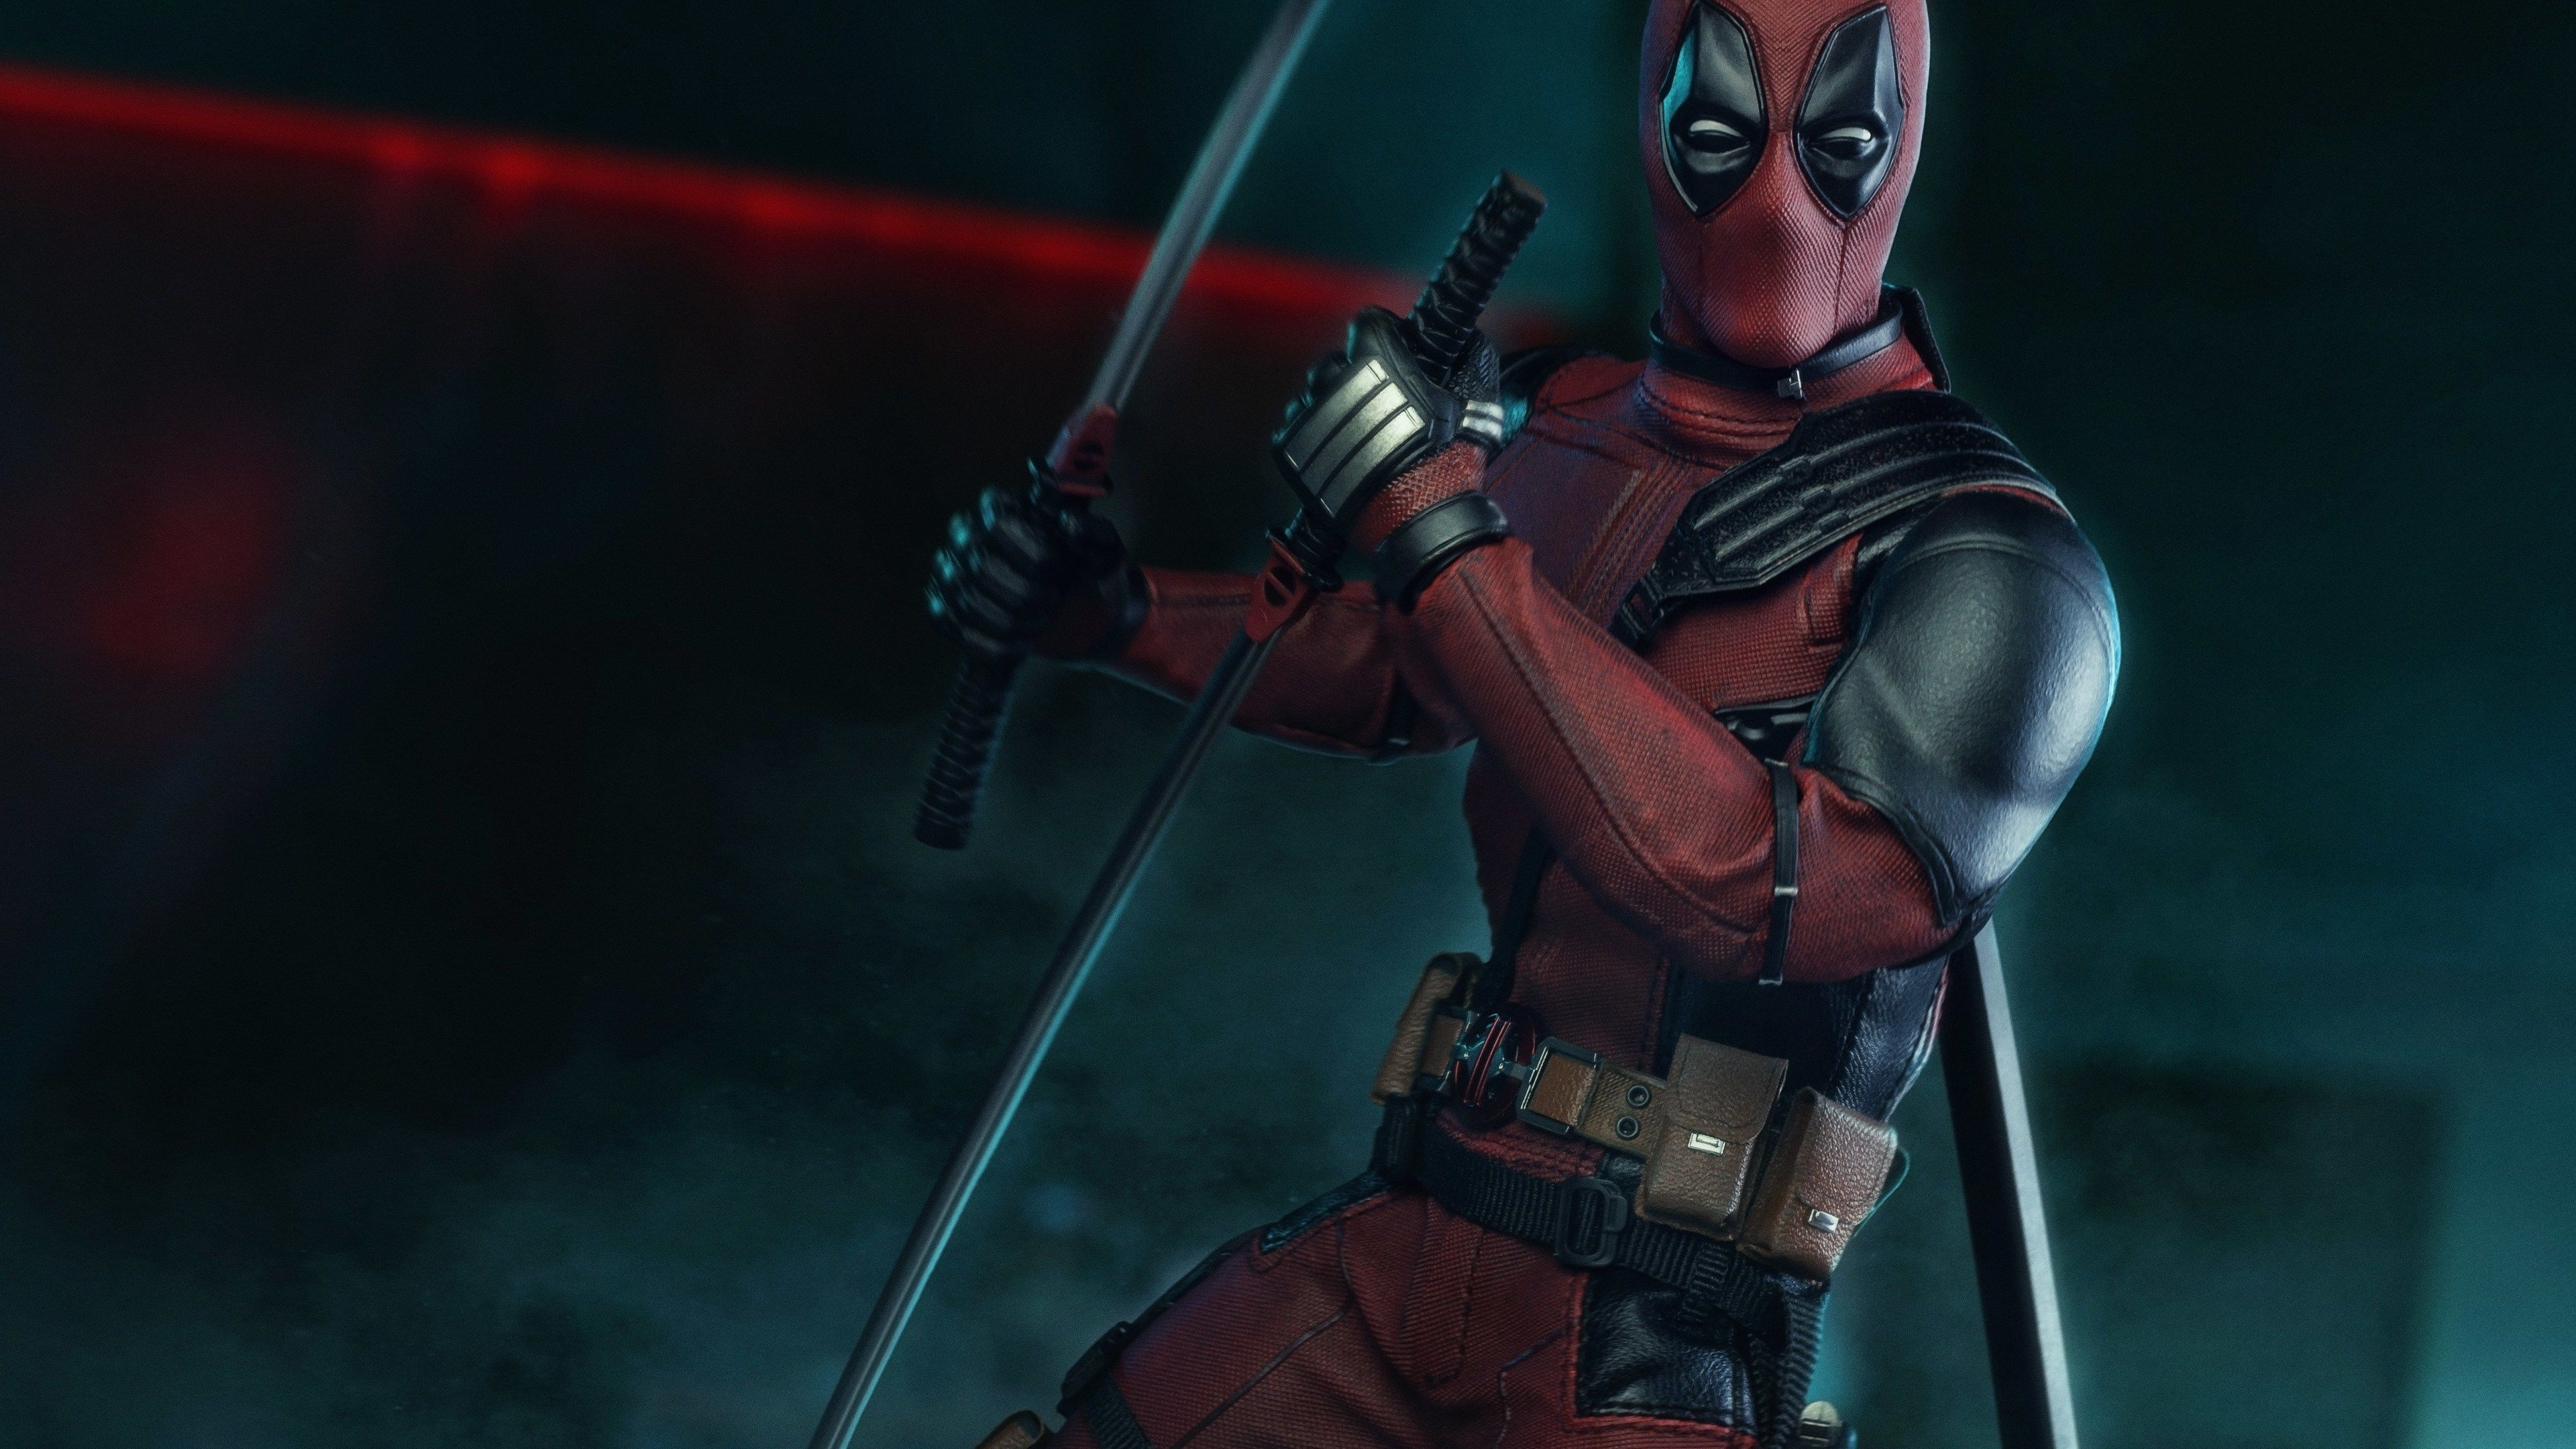 Deadpool With Swords 4k superheroes wallpapers hd wallpapers 3840x2160